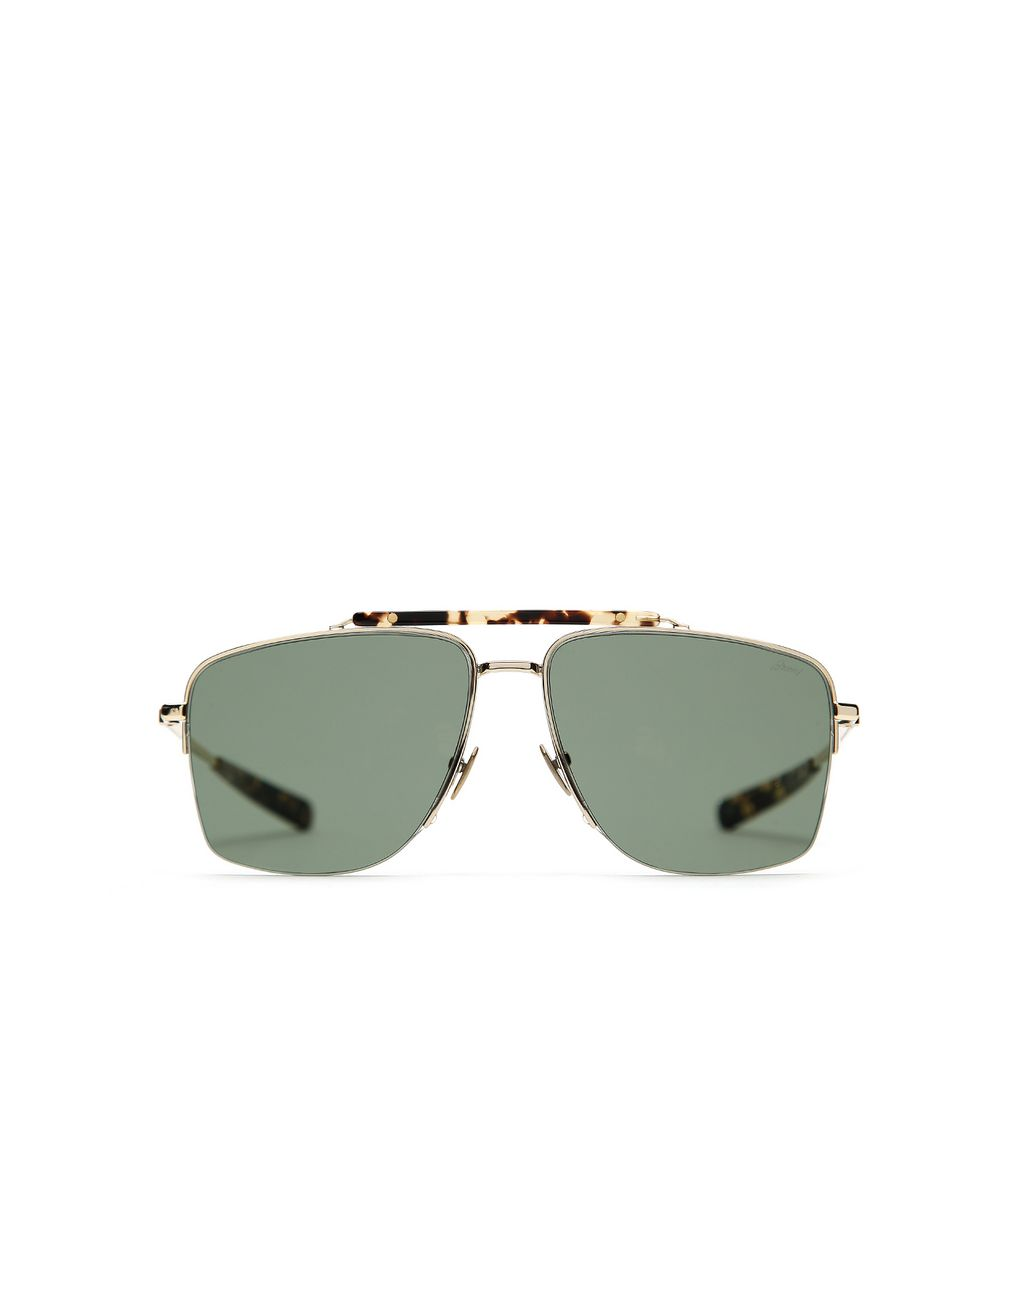 BRIONI Gold and Havana Caravan Sunglasses with Green Lenses Sunglasses Man f